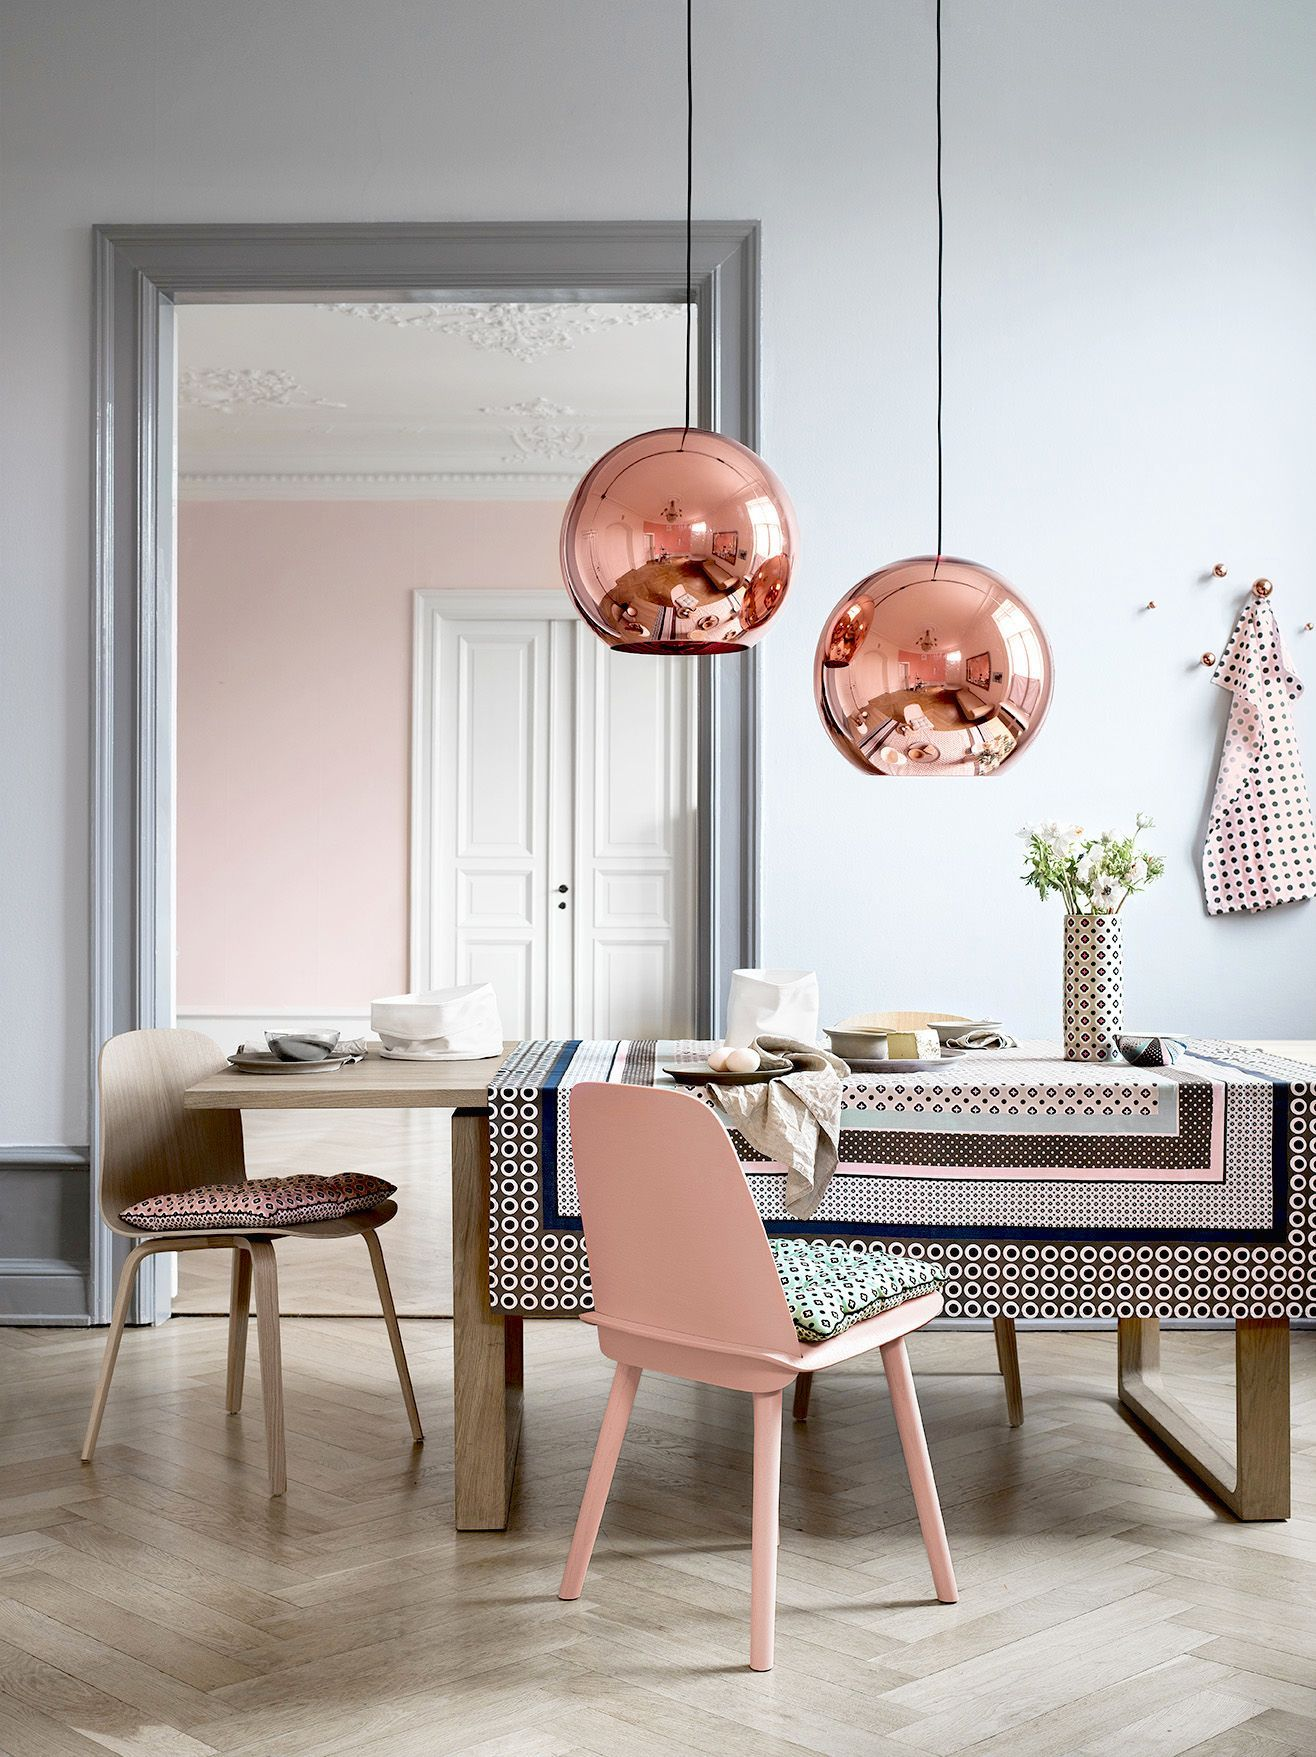 Examples Of Copper Pendant Lighting For Your Home - Kitchen light fixture sets